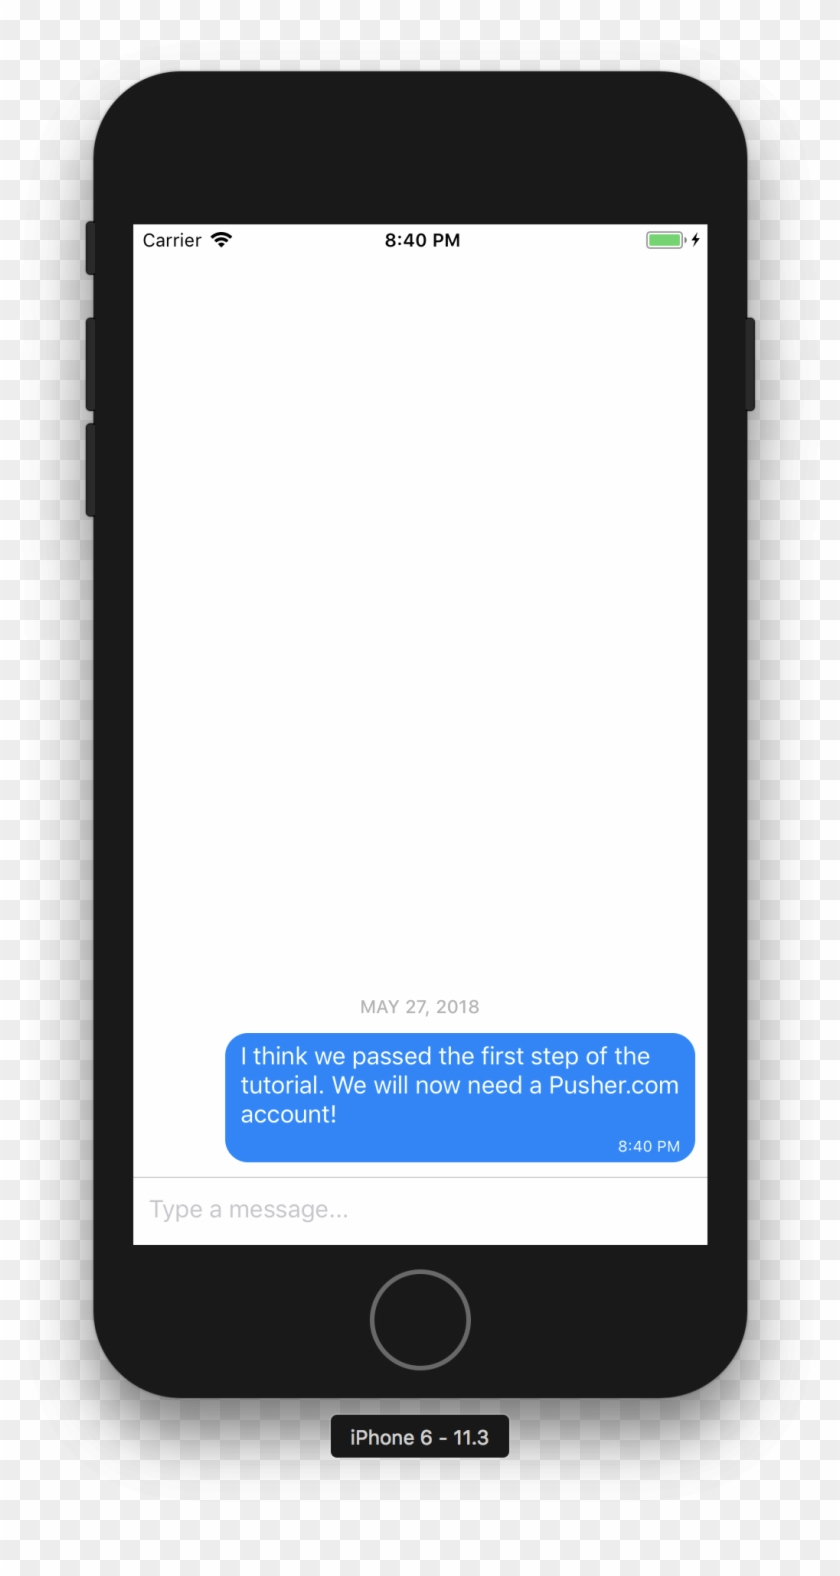 Run Ios Or React Native Run Android To See A Basic - Mobile